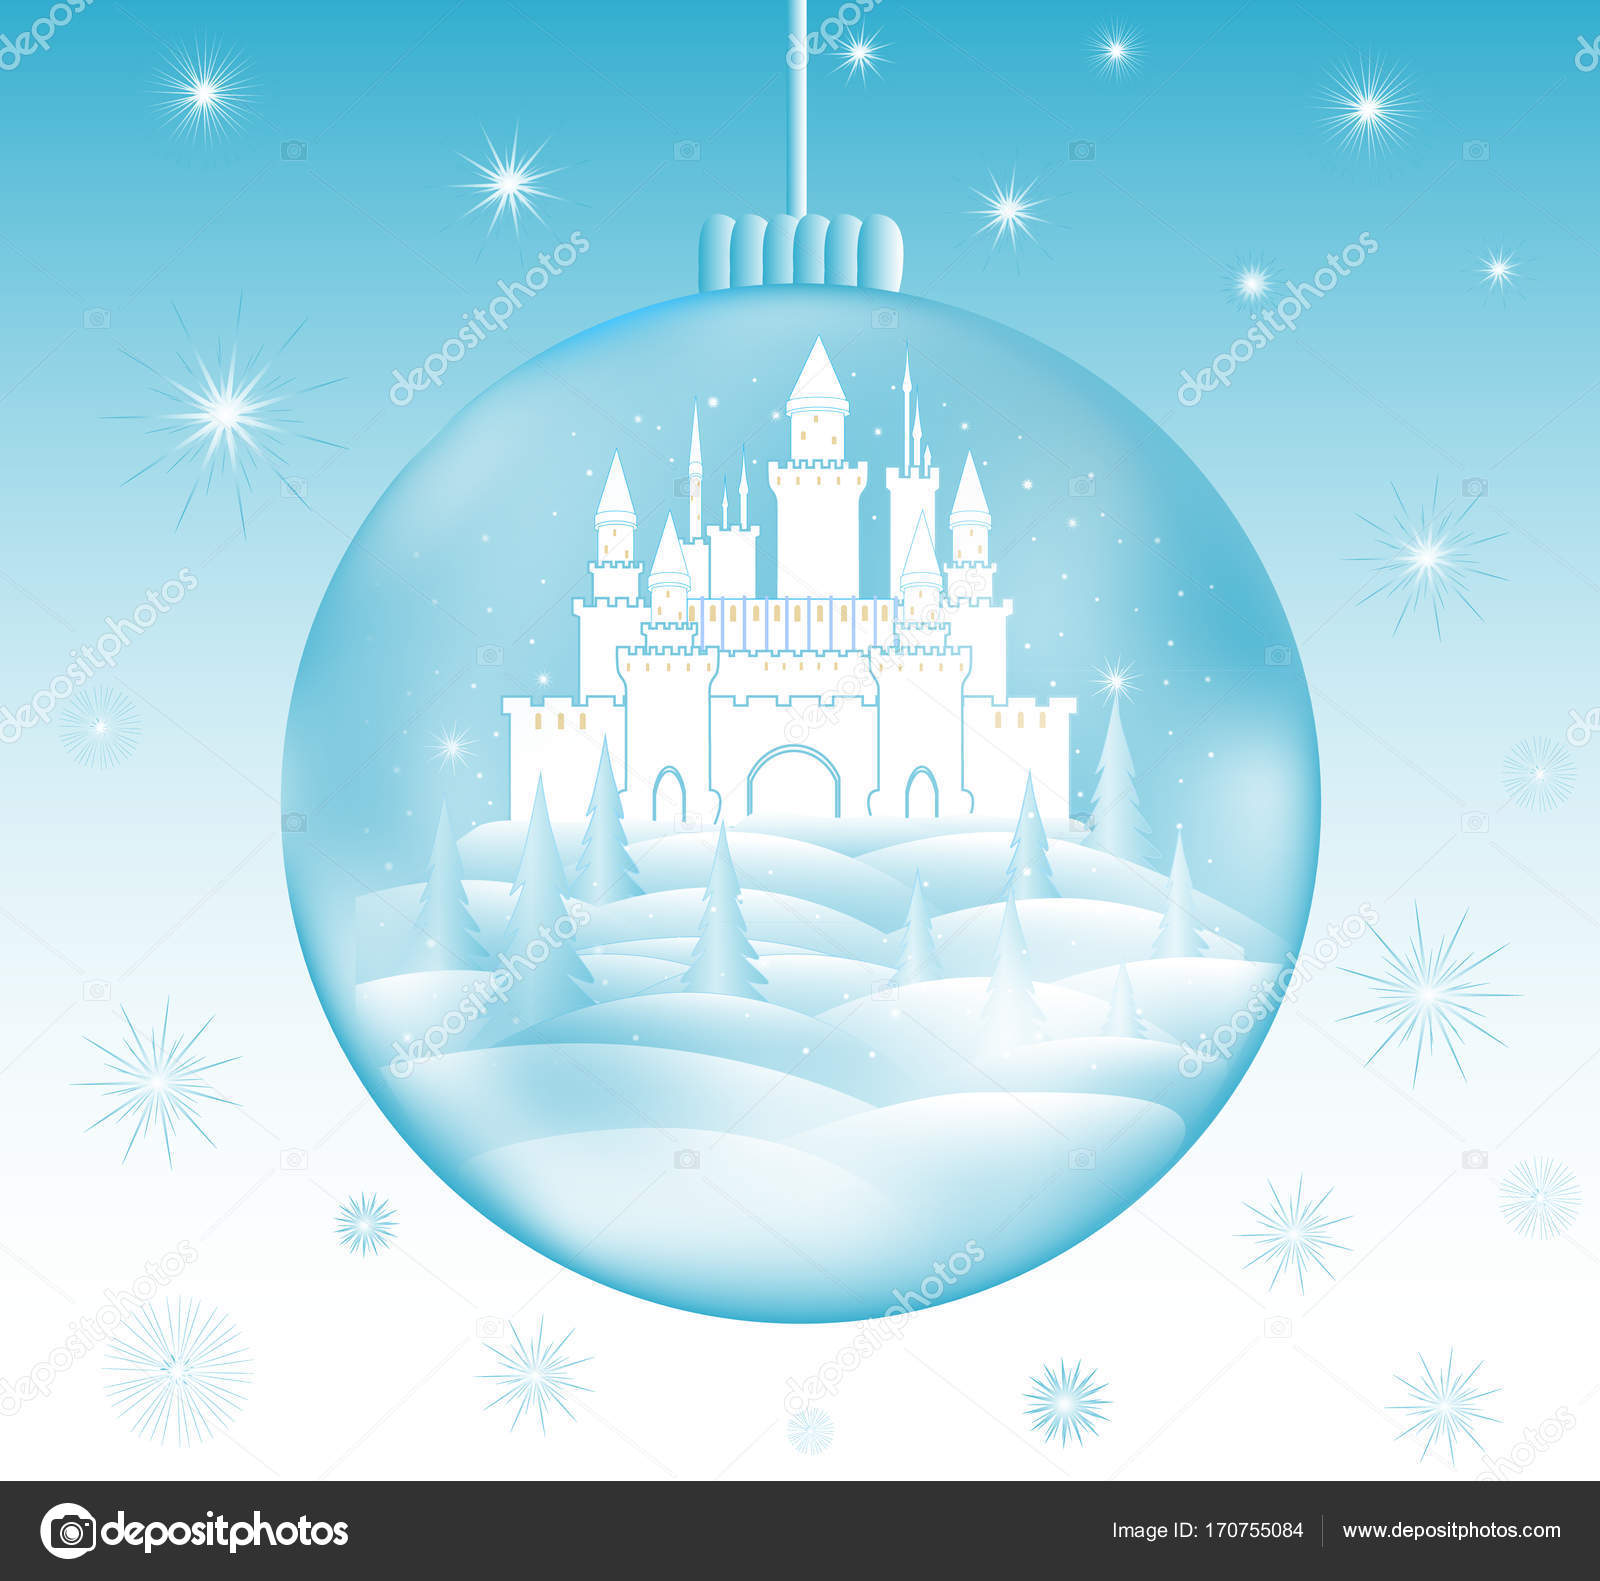 happy new year and merry christmas vector illustration with beautiful frozen castle in a snowball and